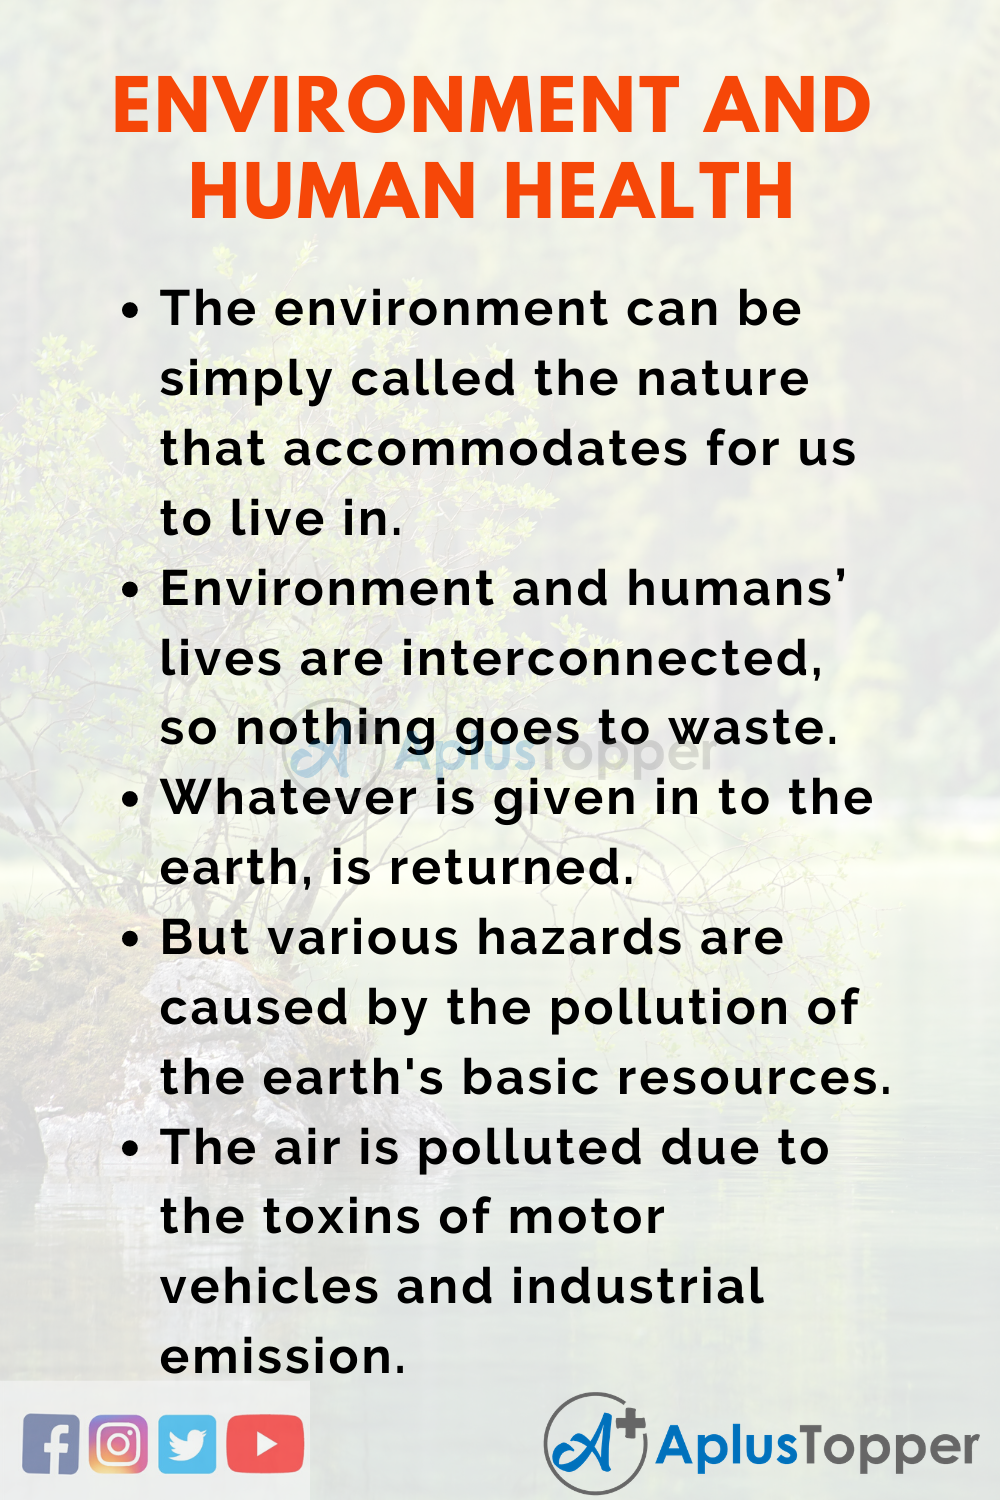 Essay about Environment and Human Health